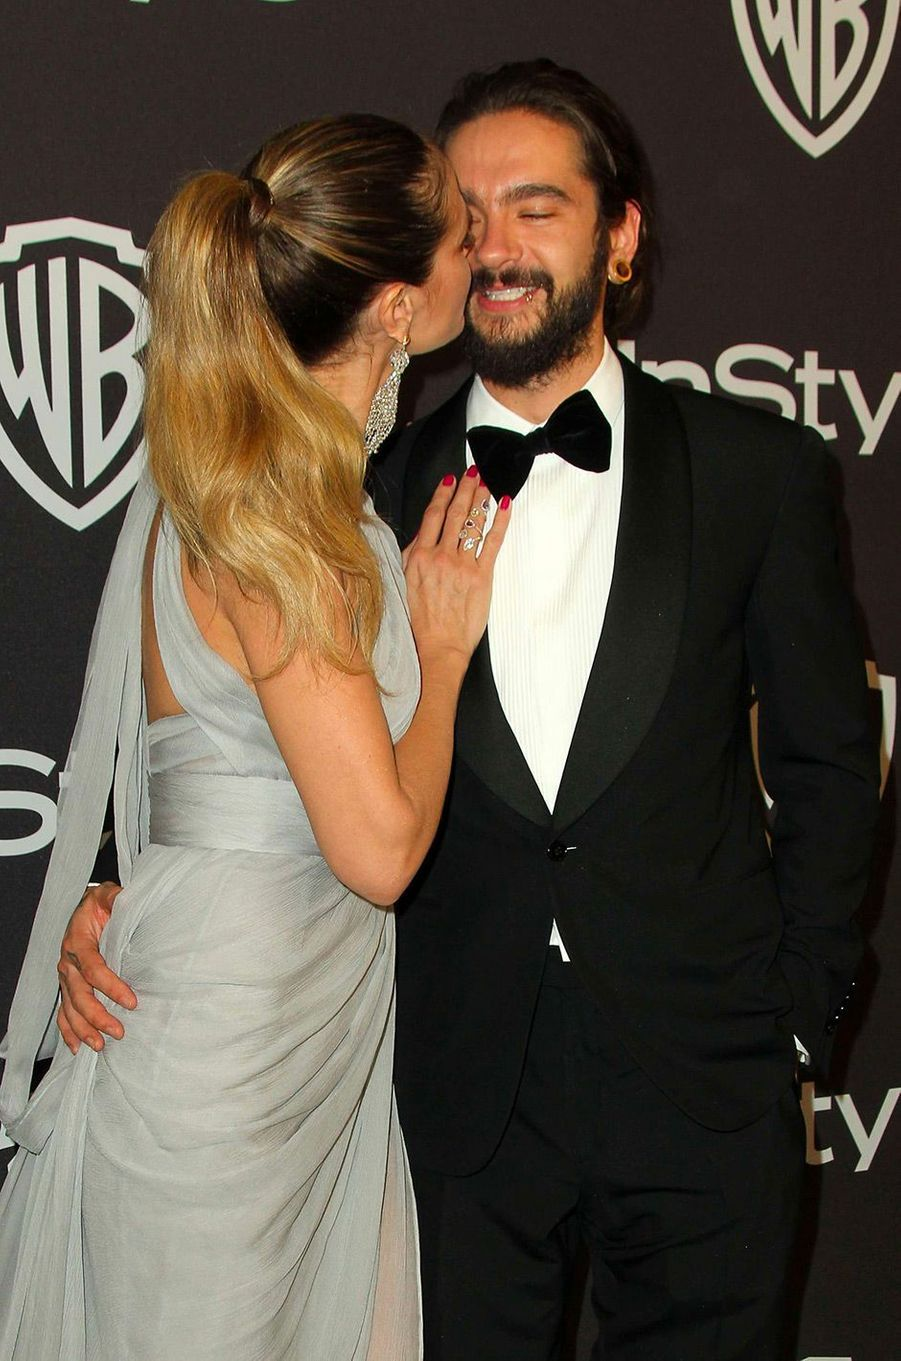 Heidi Klum et Tom Kaulitz à l'after-party In Style & Warner Bros, dimanche 6 janvier